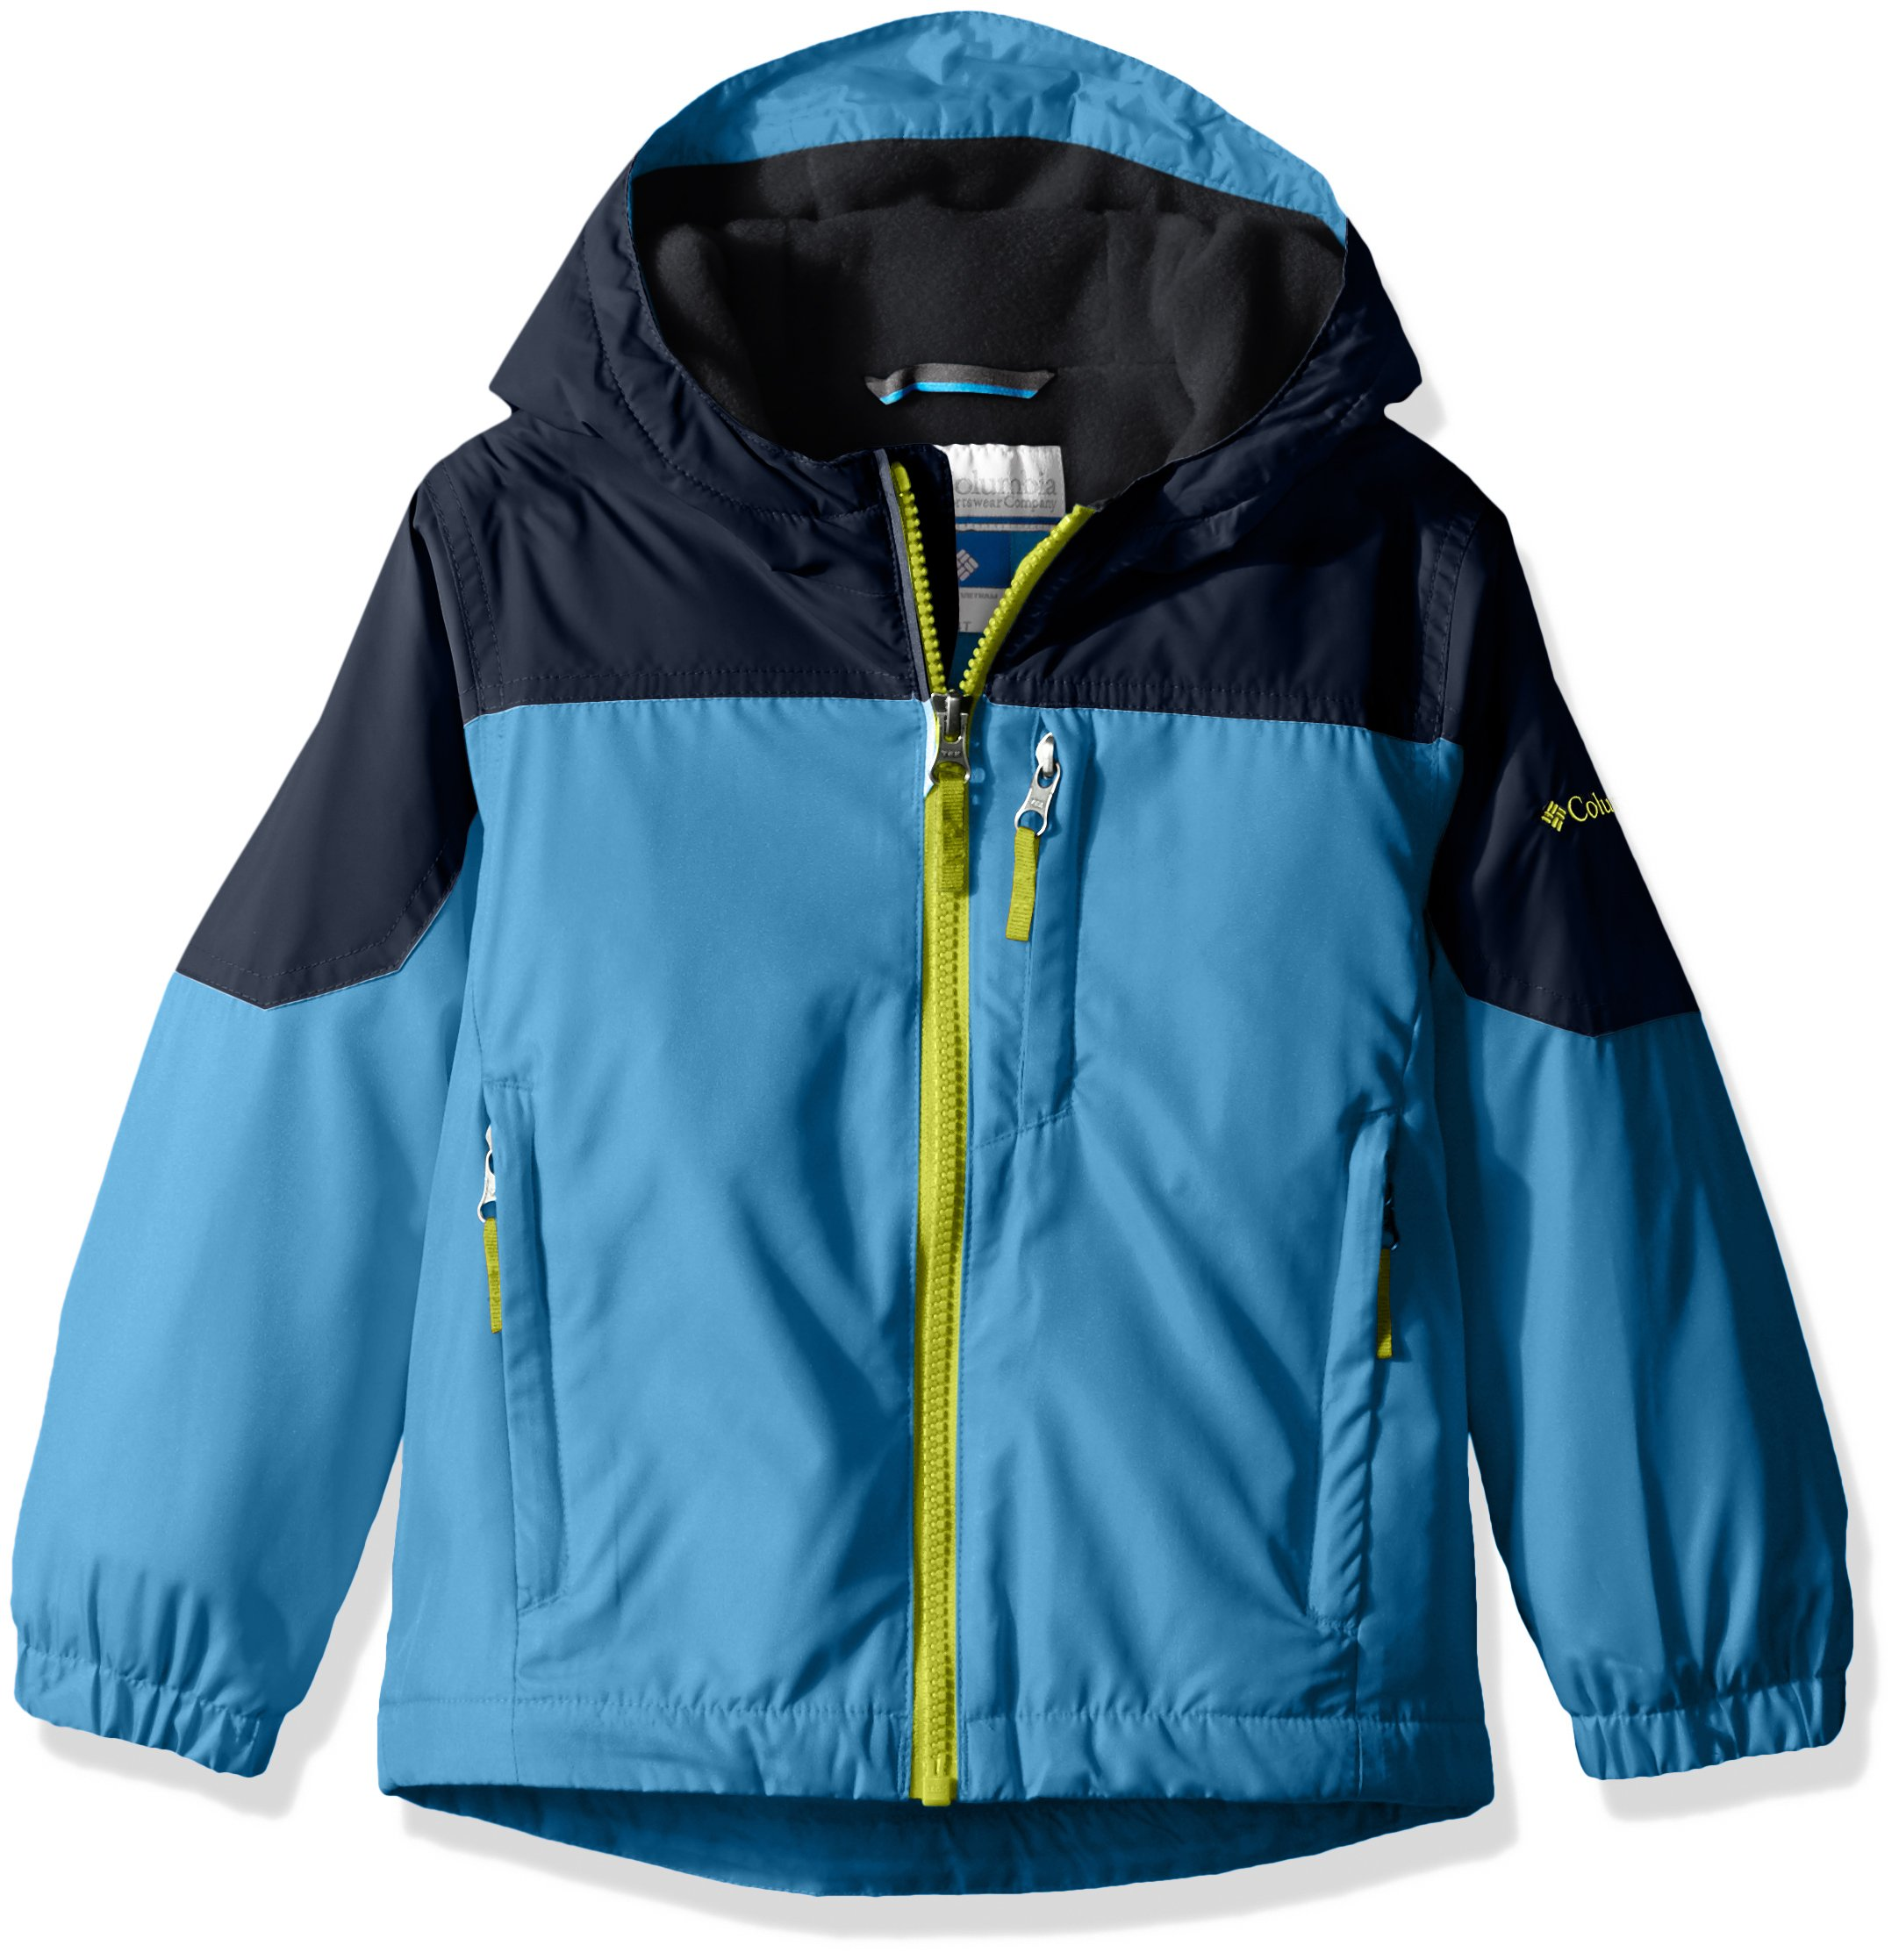 Columbia Big Boys' Ethan Pond Jacket, Peninsula, Collegiate Navy, Large by Columbia